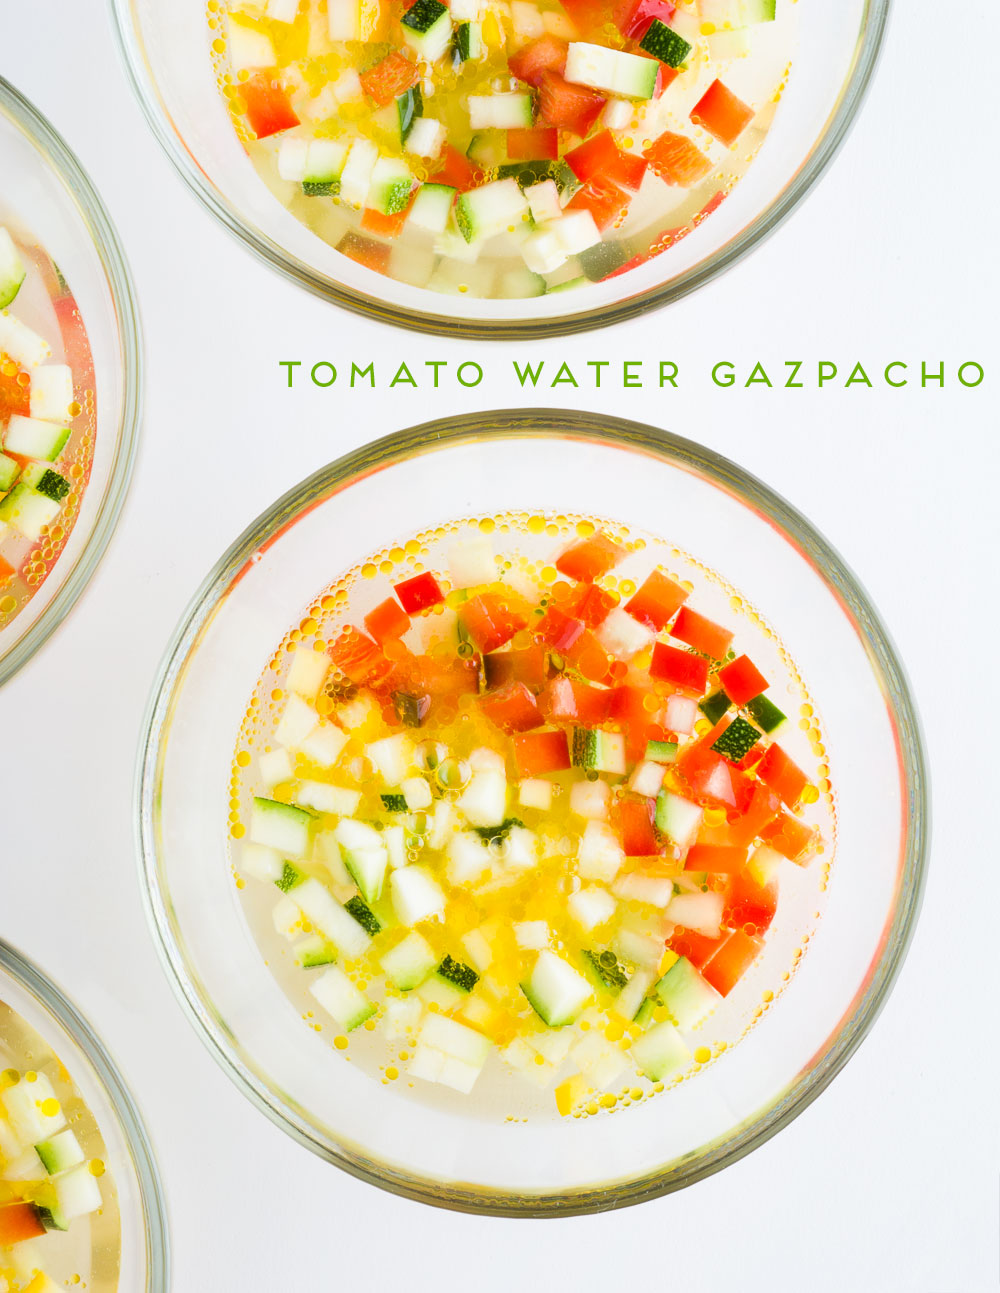 Tomato Water Gazpacho | Minimally Invasive